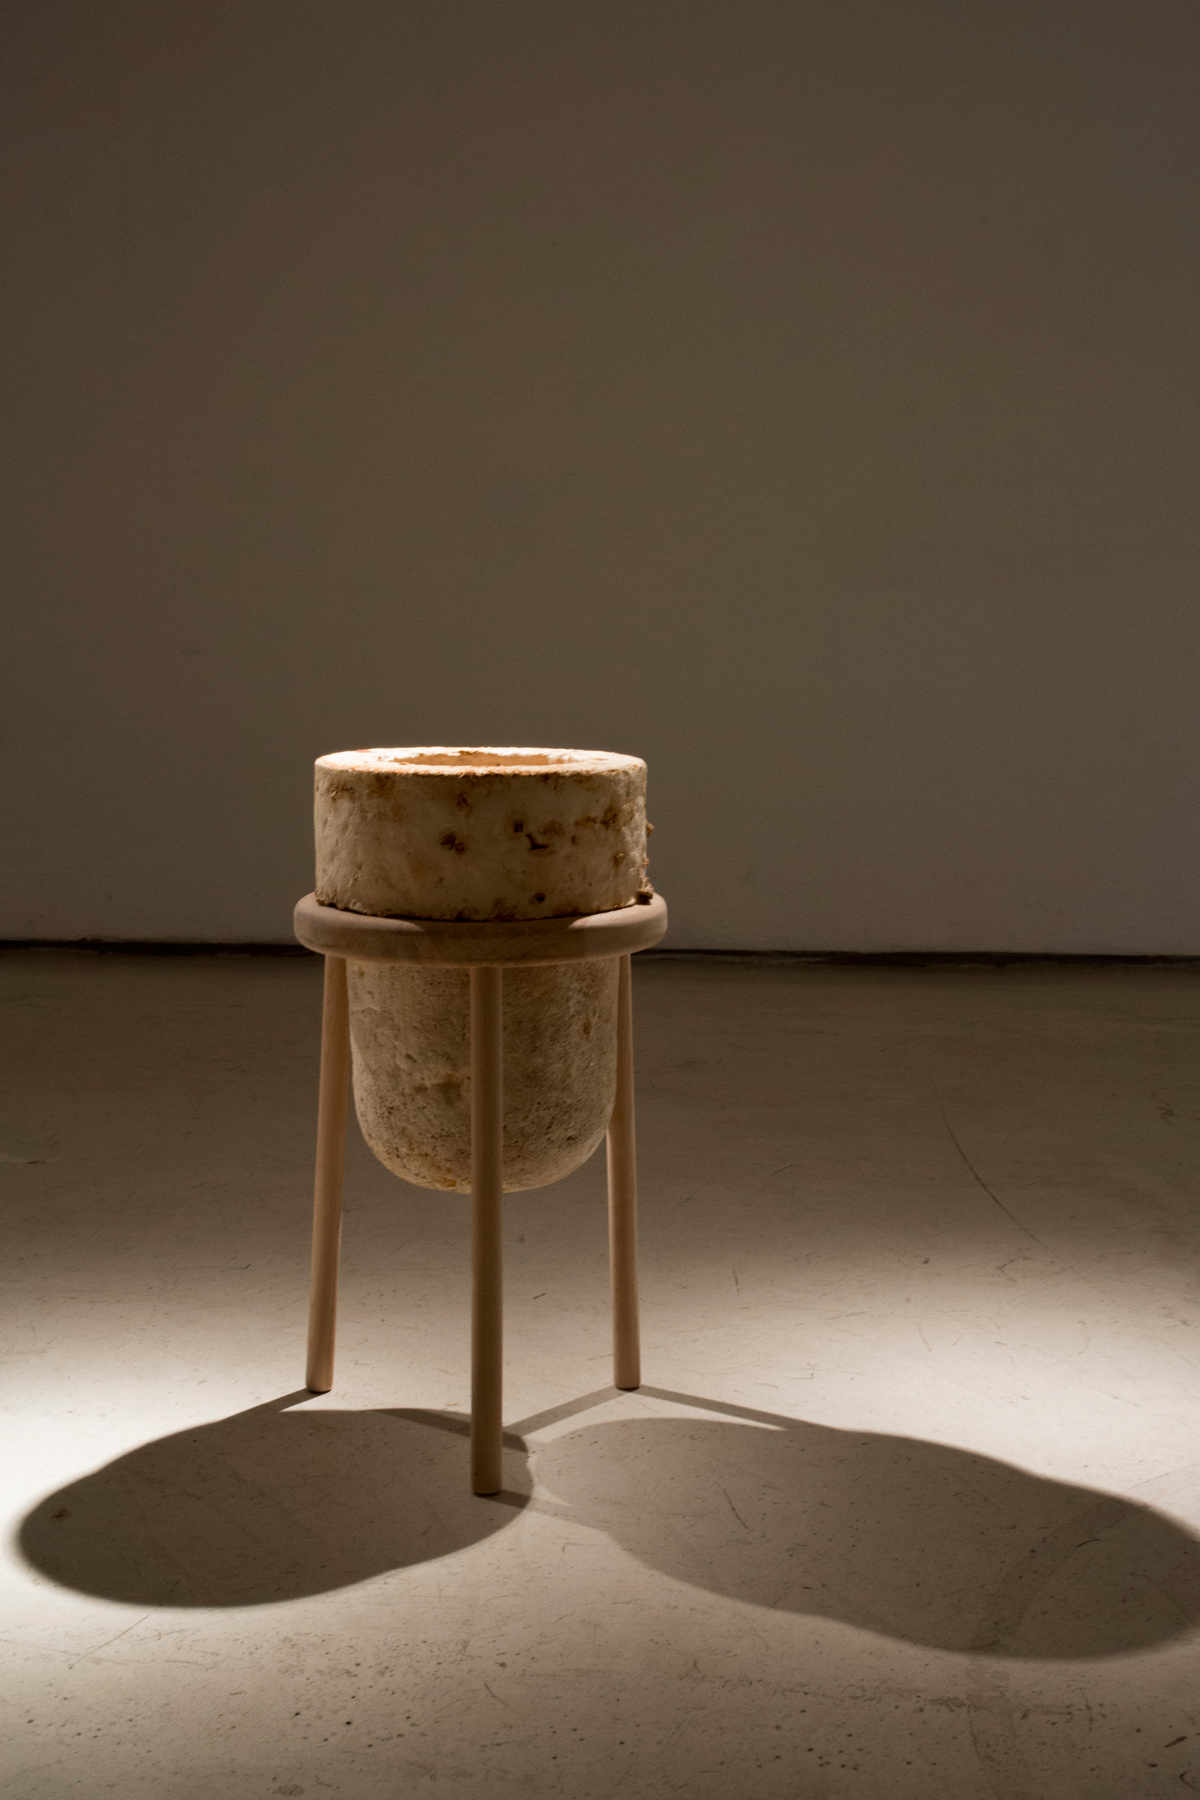 17.The Future of Plastic ©Officina Corpuscoli | Maurizio Montalti - Vase #3 - Mycelium Vase on Wood Stand